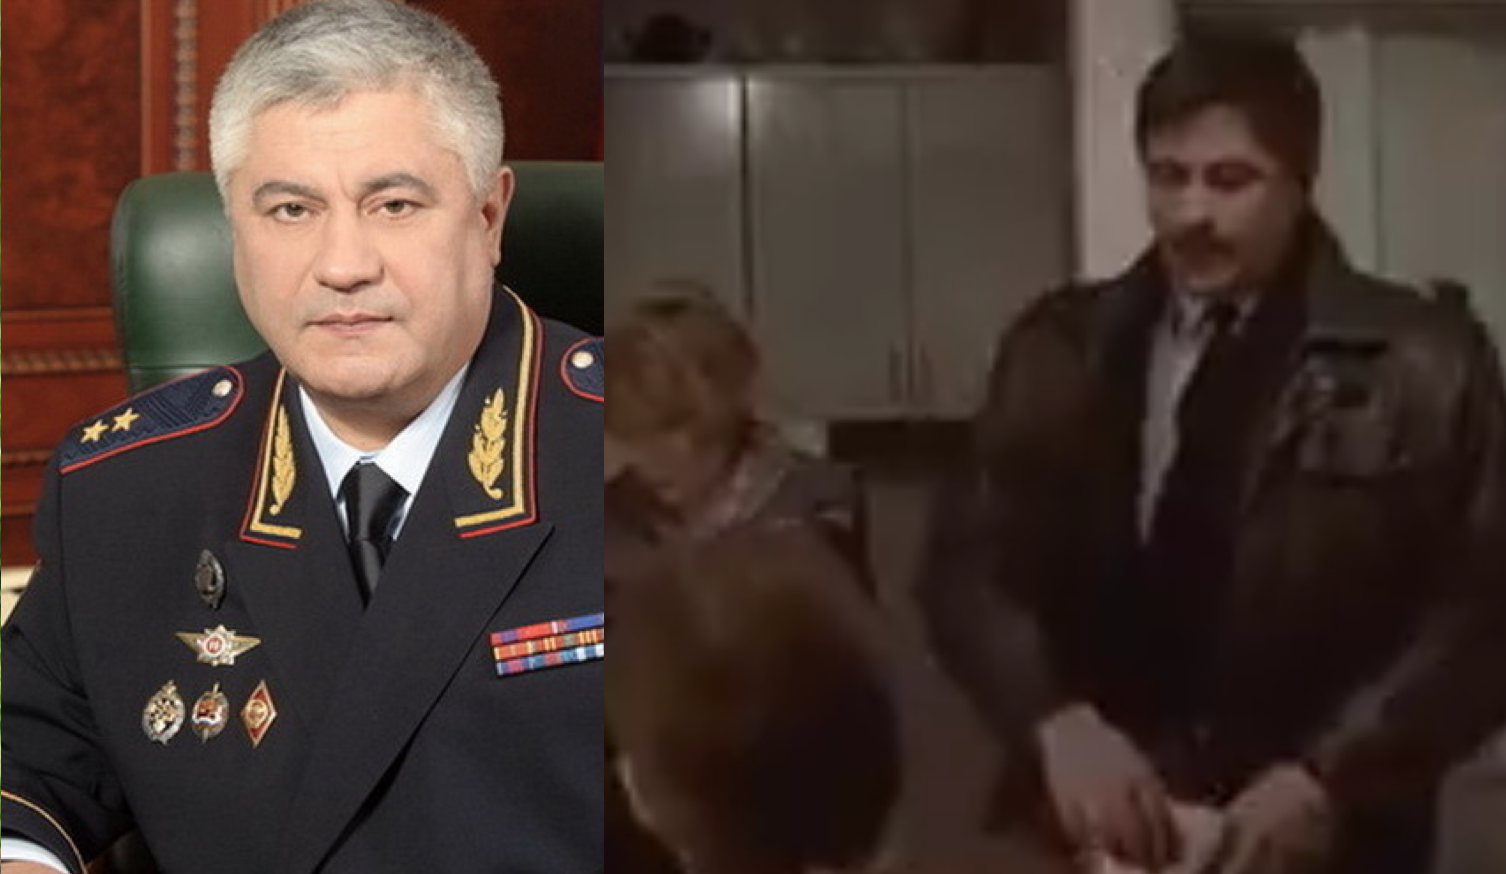 Russian Minister of Internal Affairs Used to be an Actor in 1990s